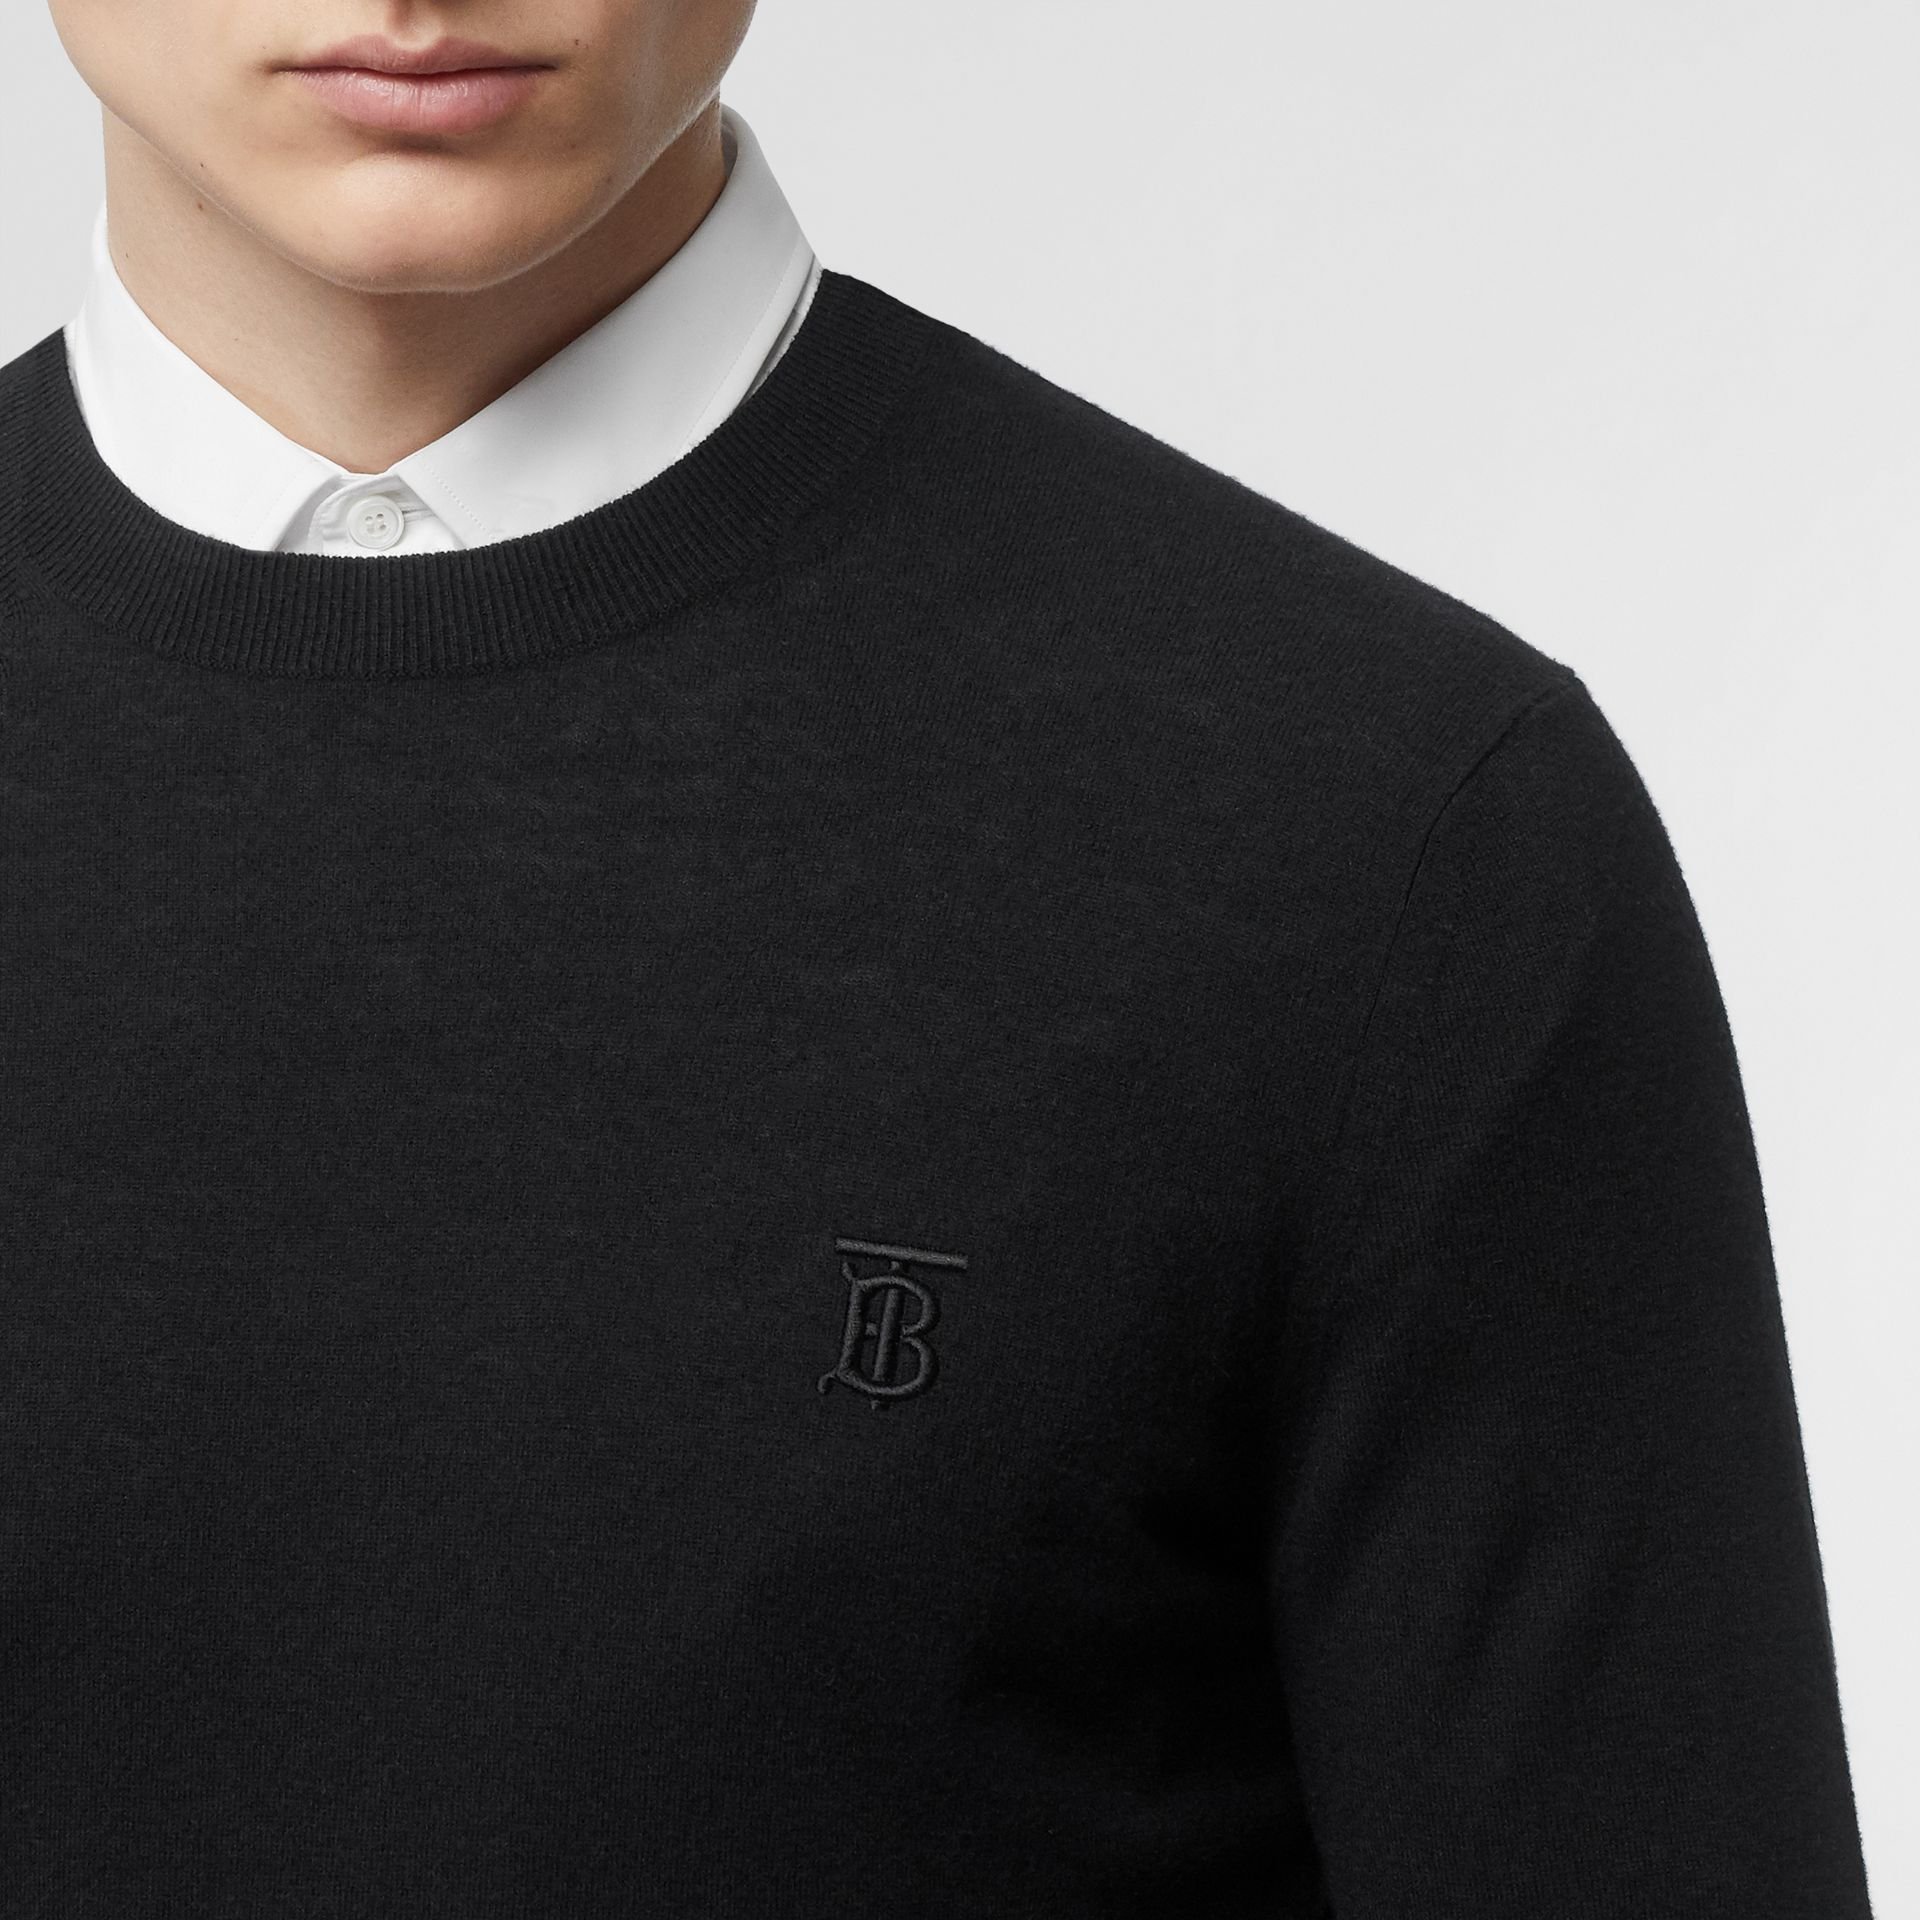 Monogram Motif Cashmere Sweater in Black - Men | Burberry Hong Kong - gallery image 1